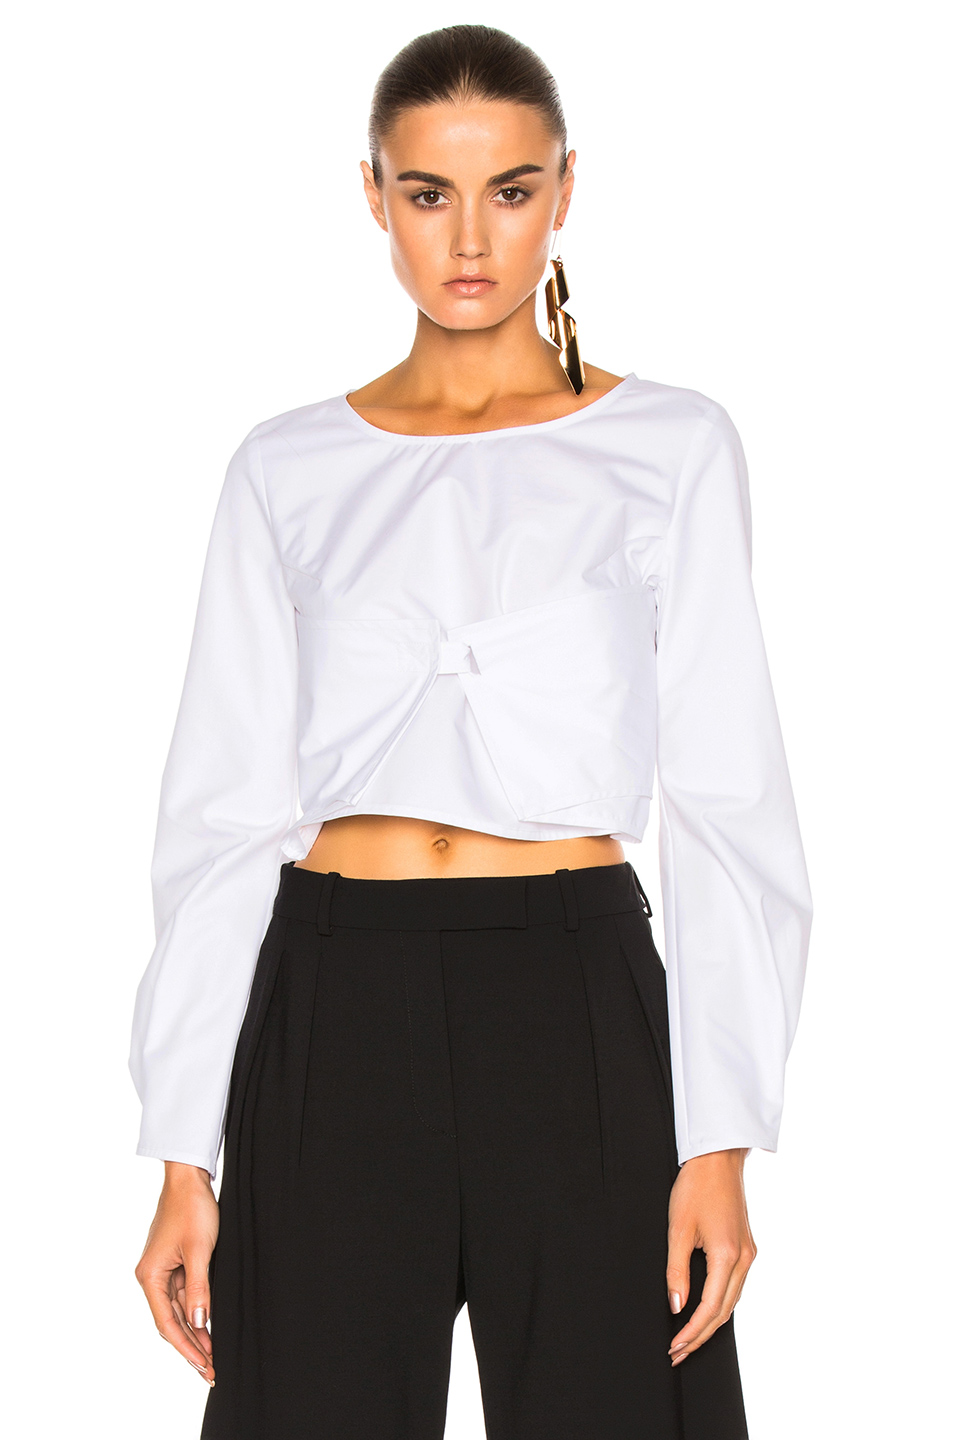 J.W. Anderson Long Sleeve Top in White